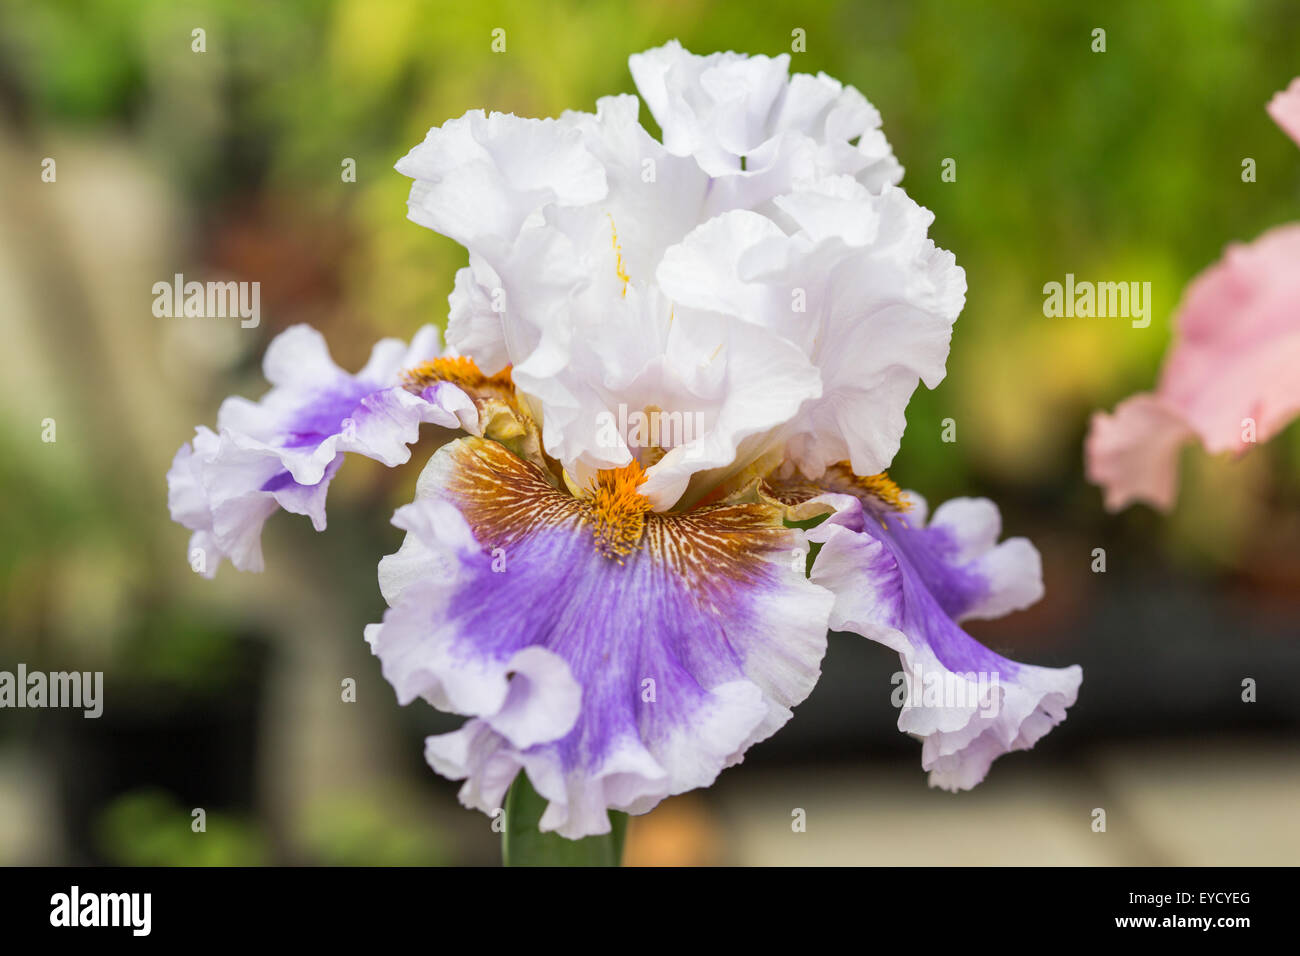 Beautiful flowers 2019 white bearded iris flower beautiful flowers white bearded iris flower various pictures of the most beautiful flowers can be found here find and download the prettiest flowers ornamental plants izmirmasajfo